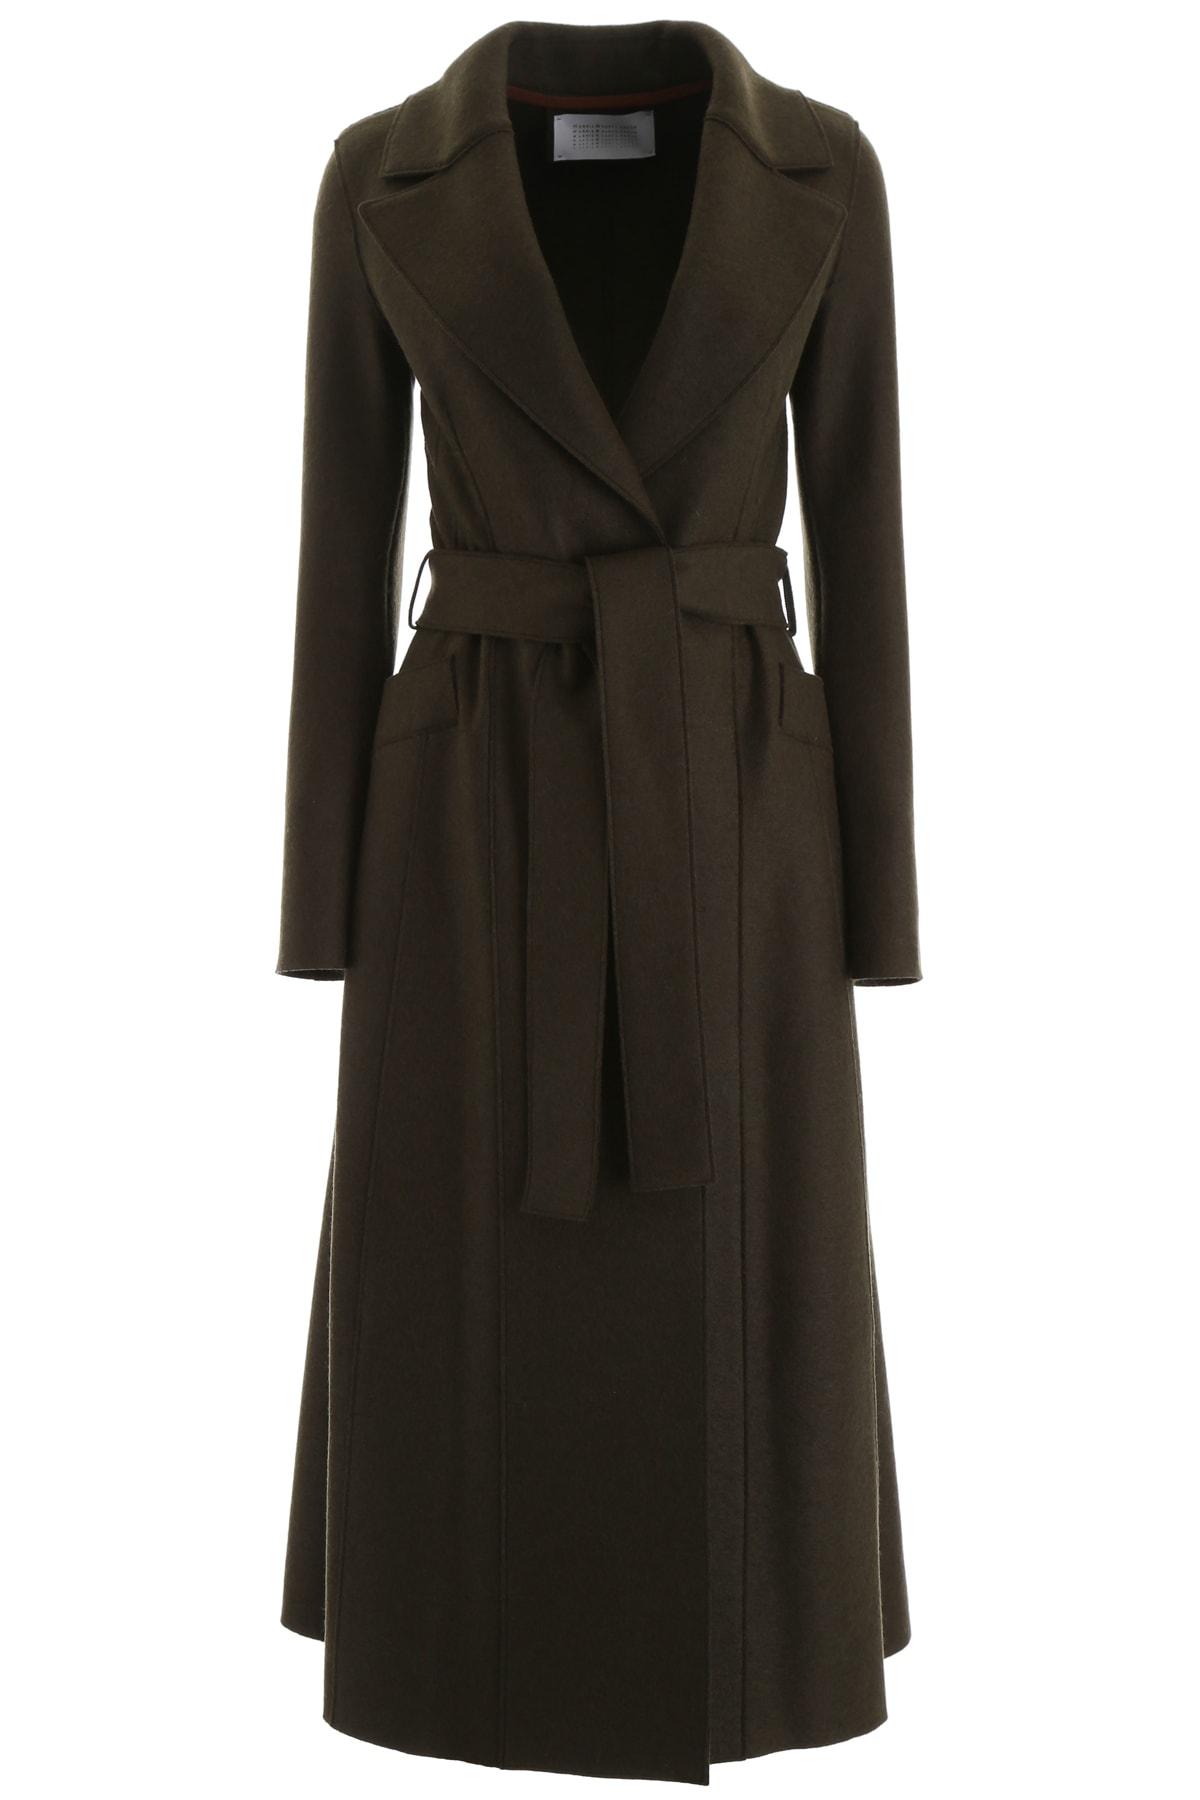 Harris Wharf London Belted Coat